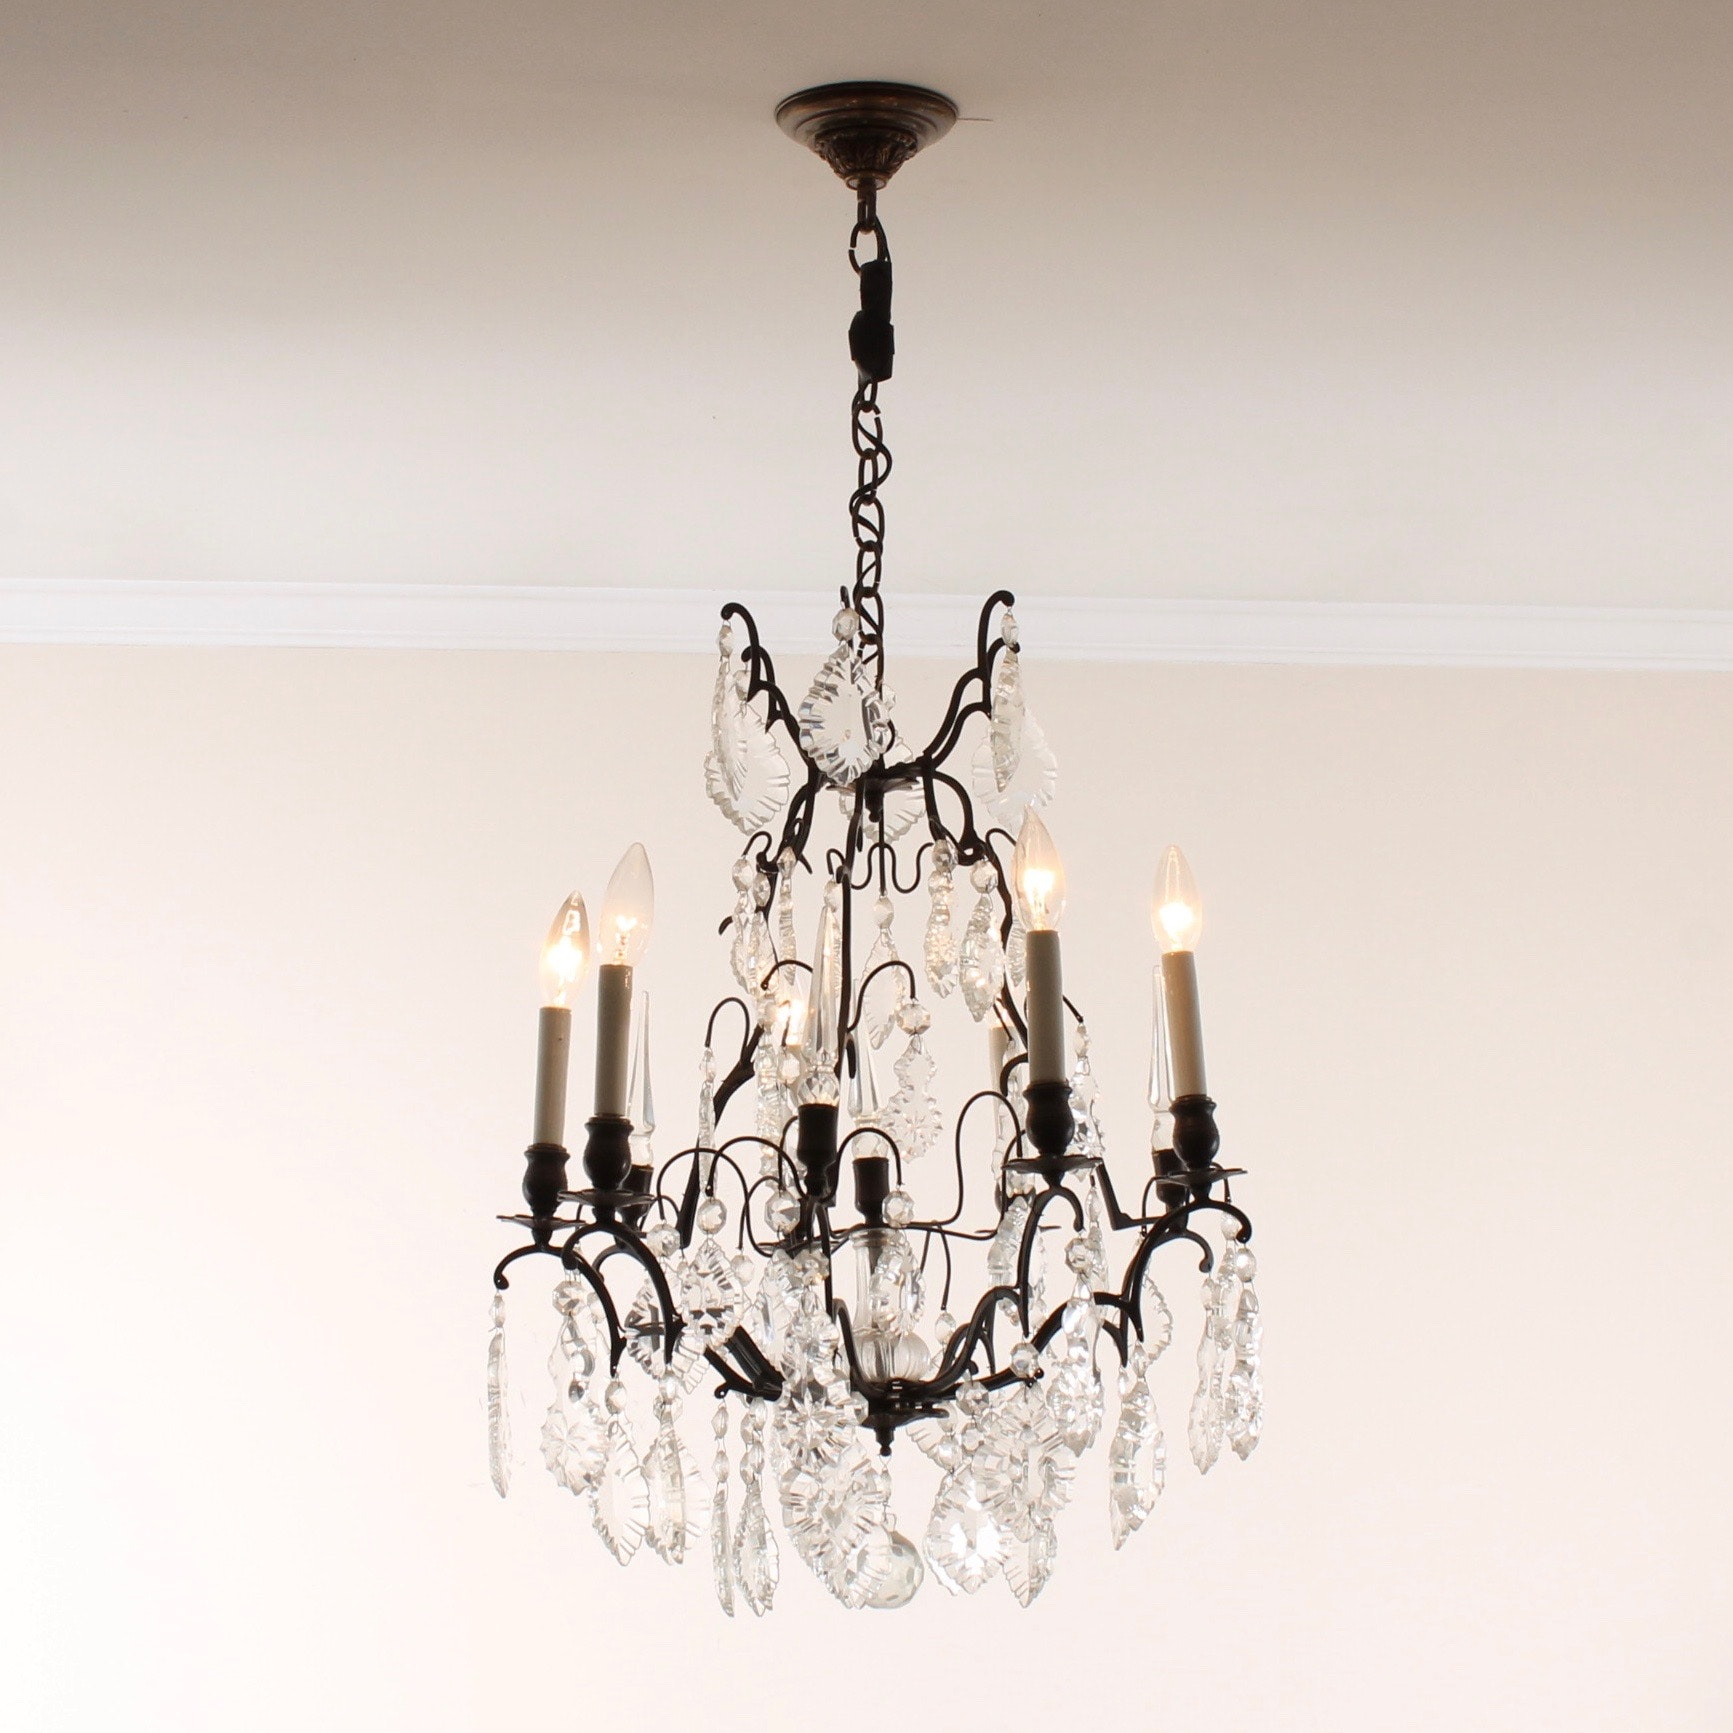 Vintage Wrought Metal and Lead Crystal Chandelier